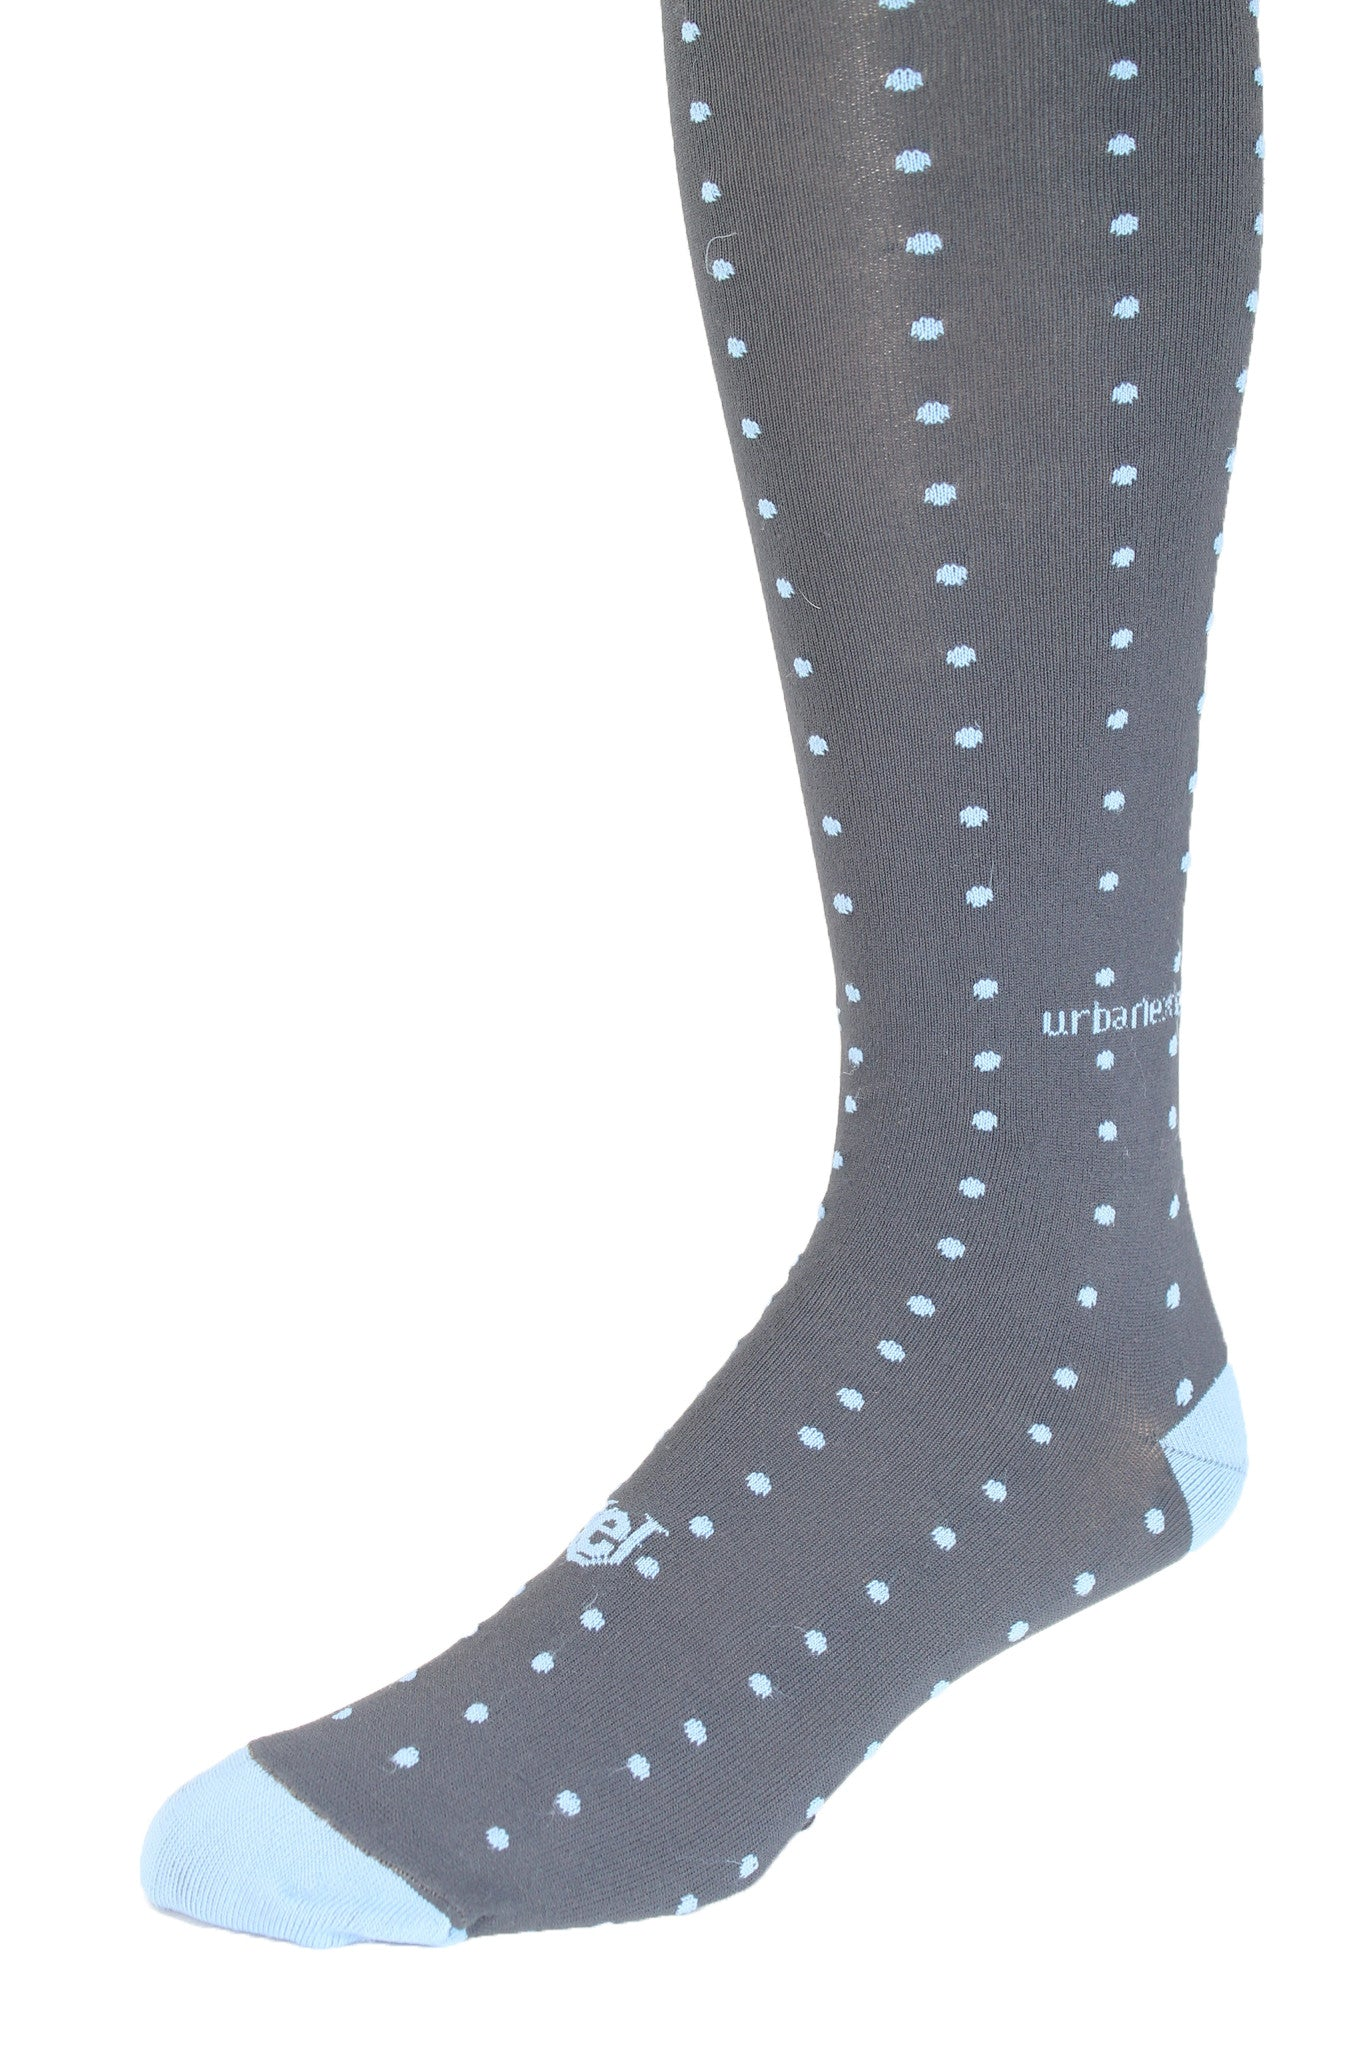 Performance ThinSkin Charcoal with Light Blue Pin Dots